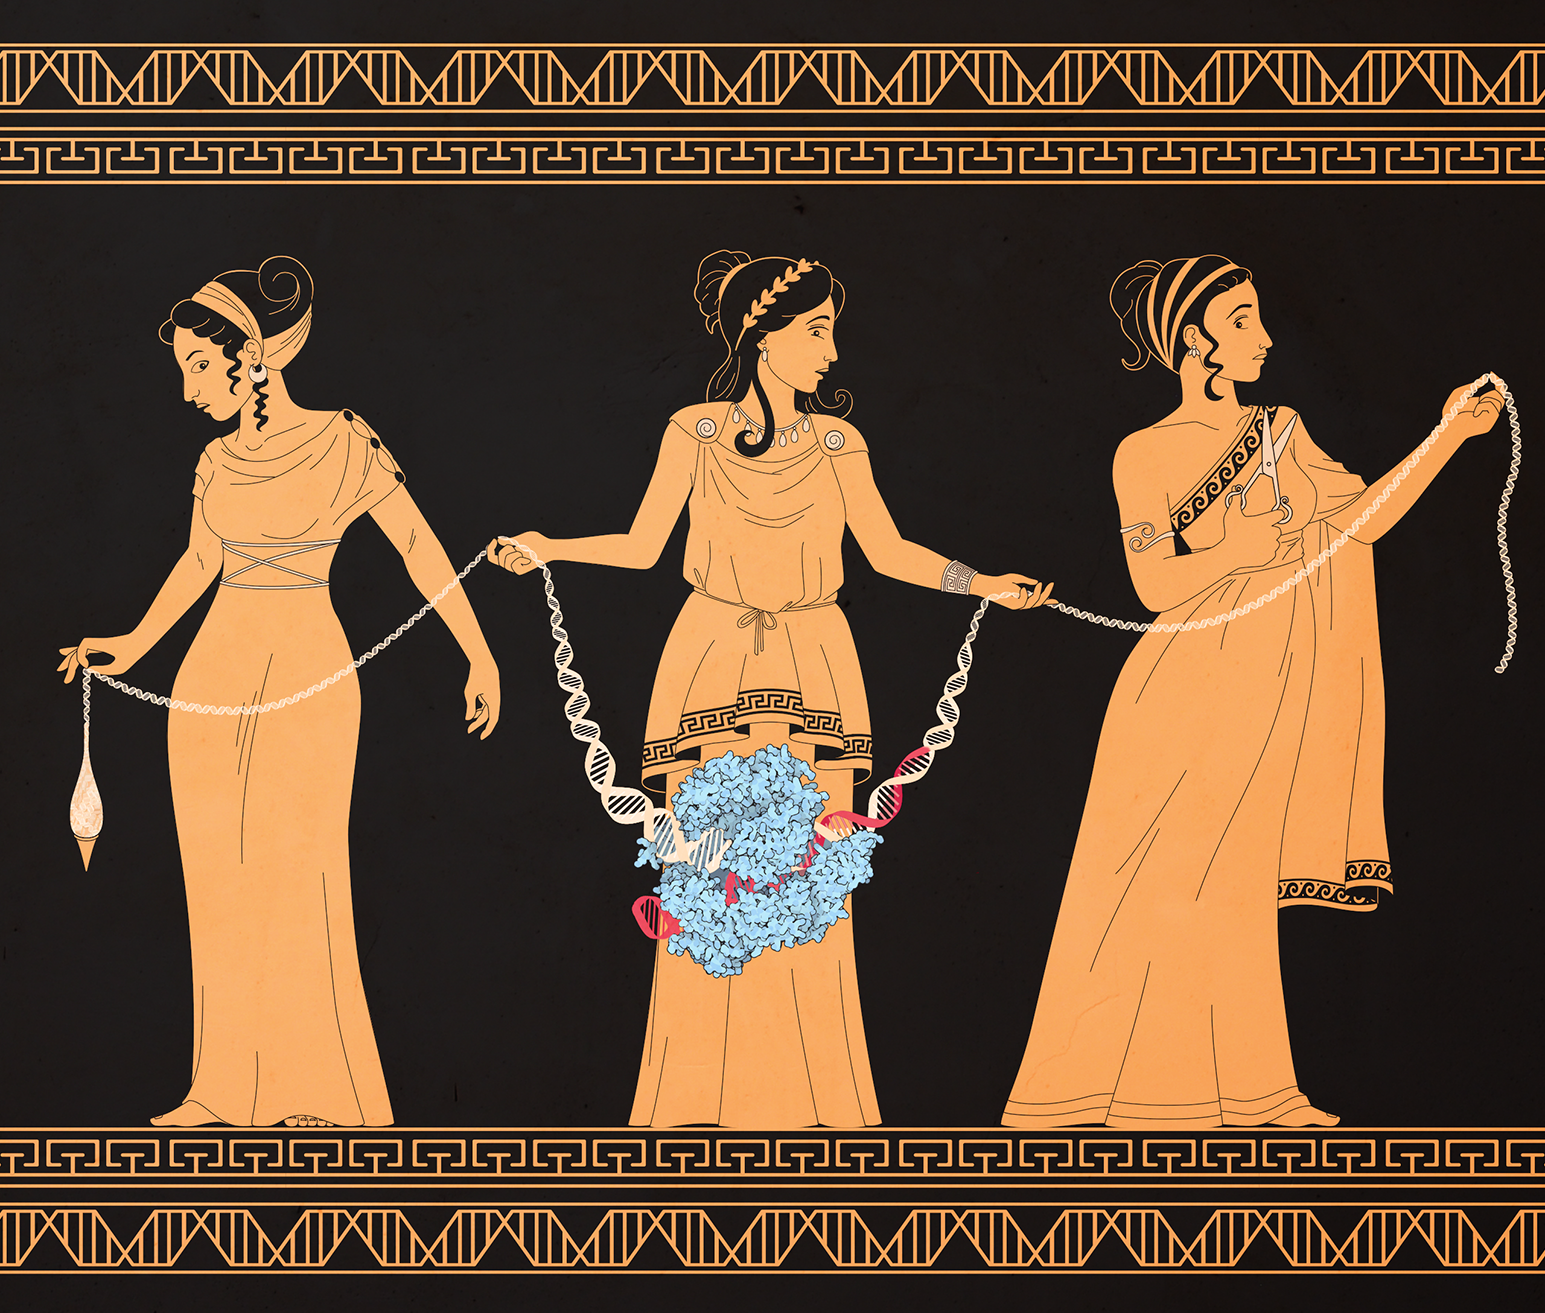 Red-figure Greek pottery style illustration of the three Fates holding a DNA strand and a CRISPR molecule